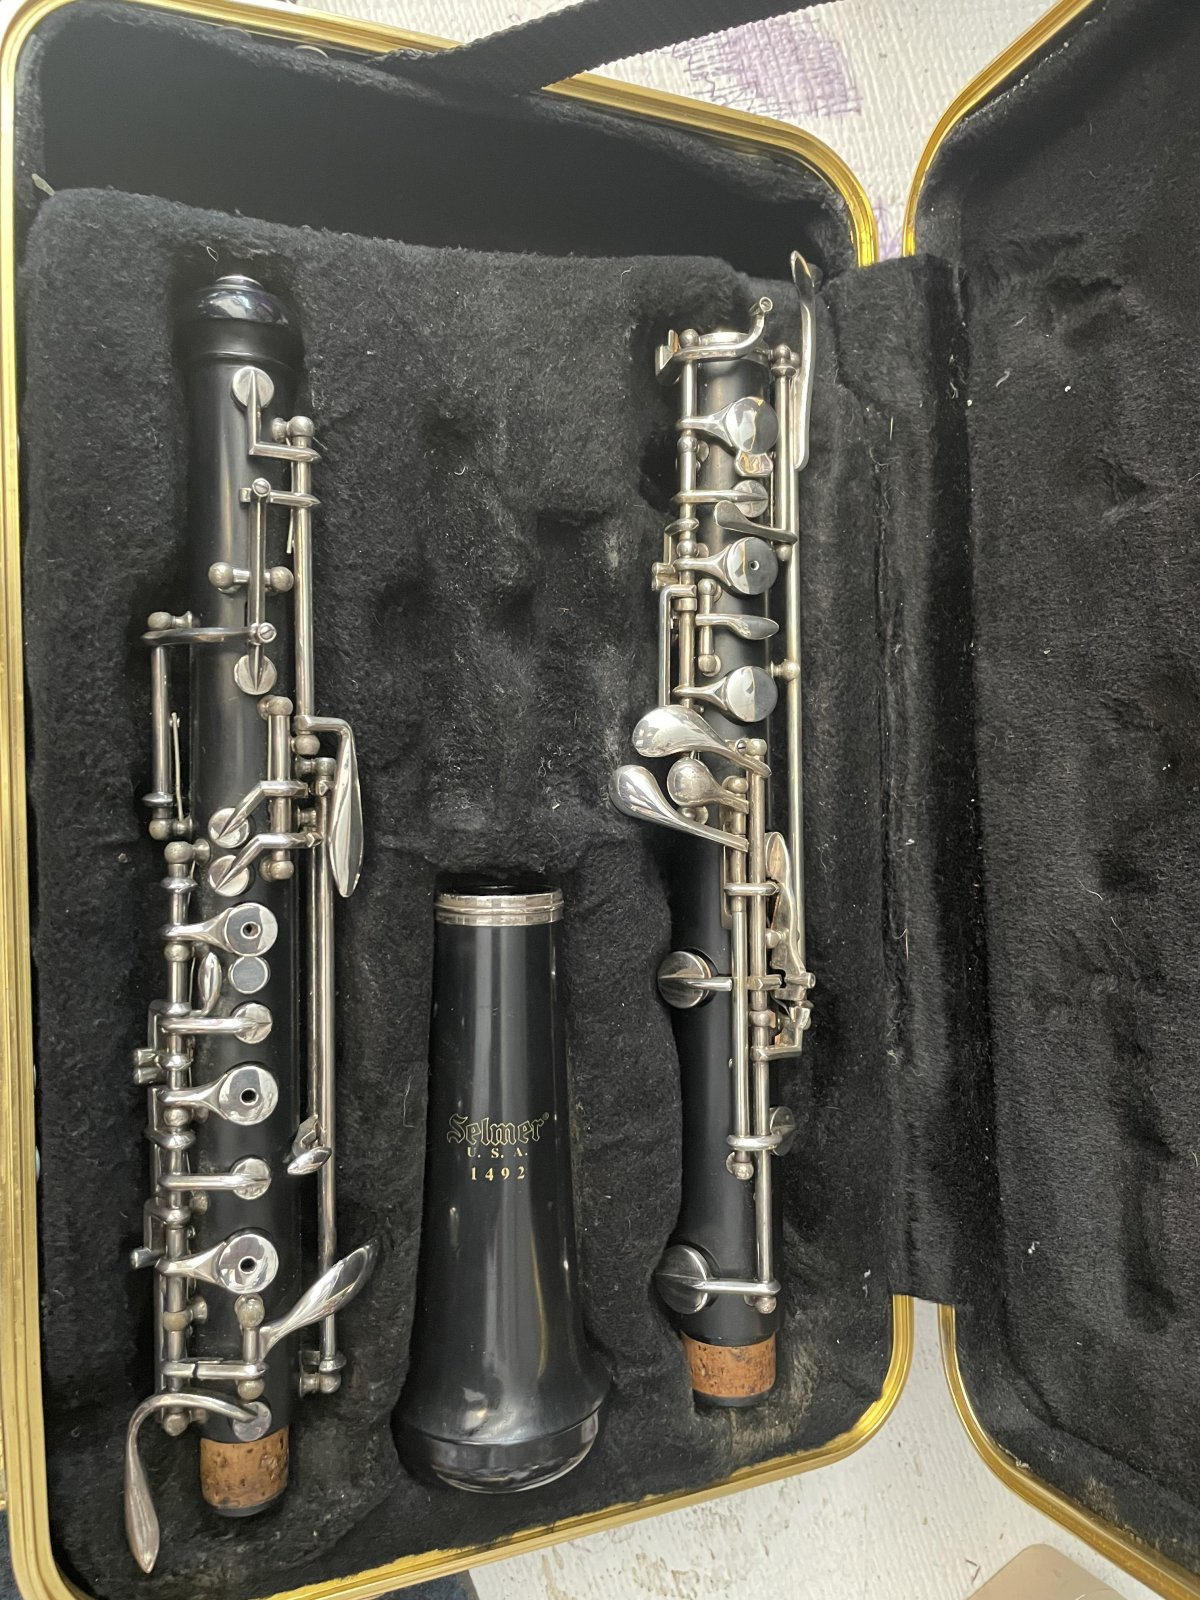 Selmer 1492 Oboe (used) consignment